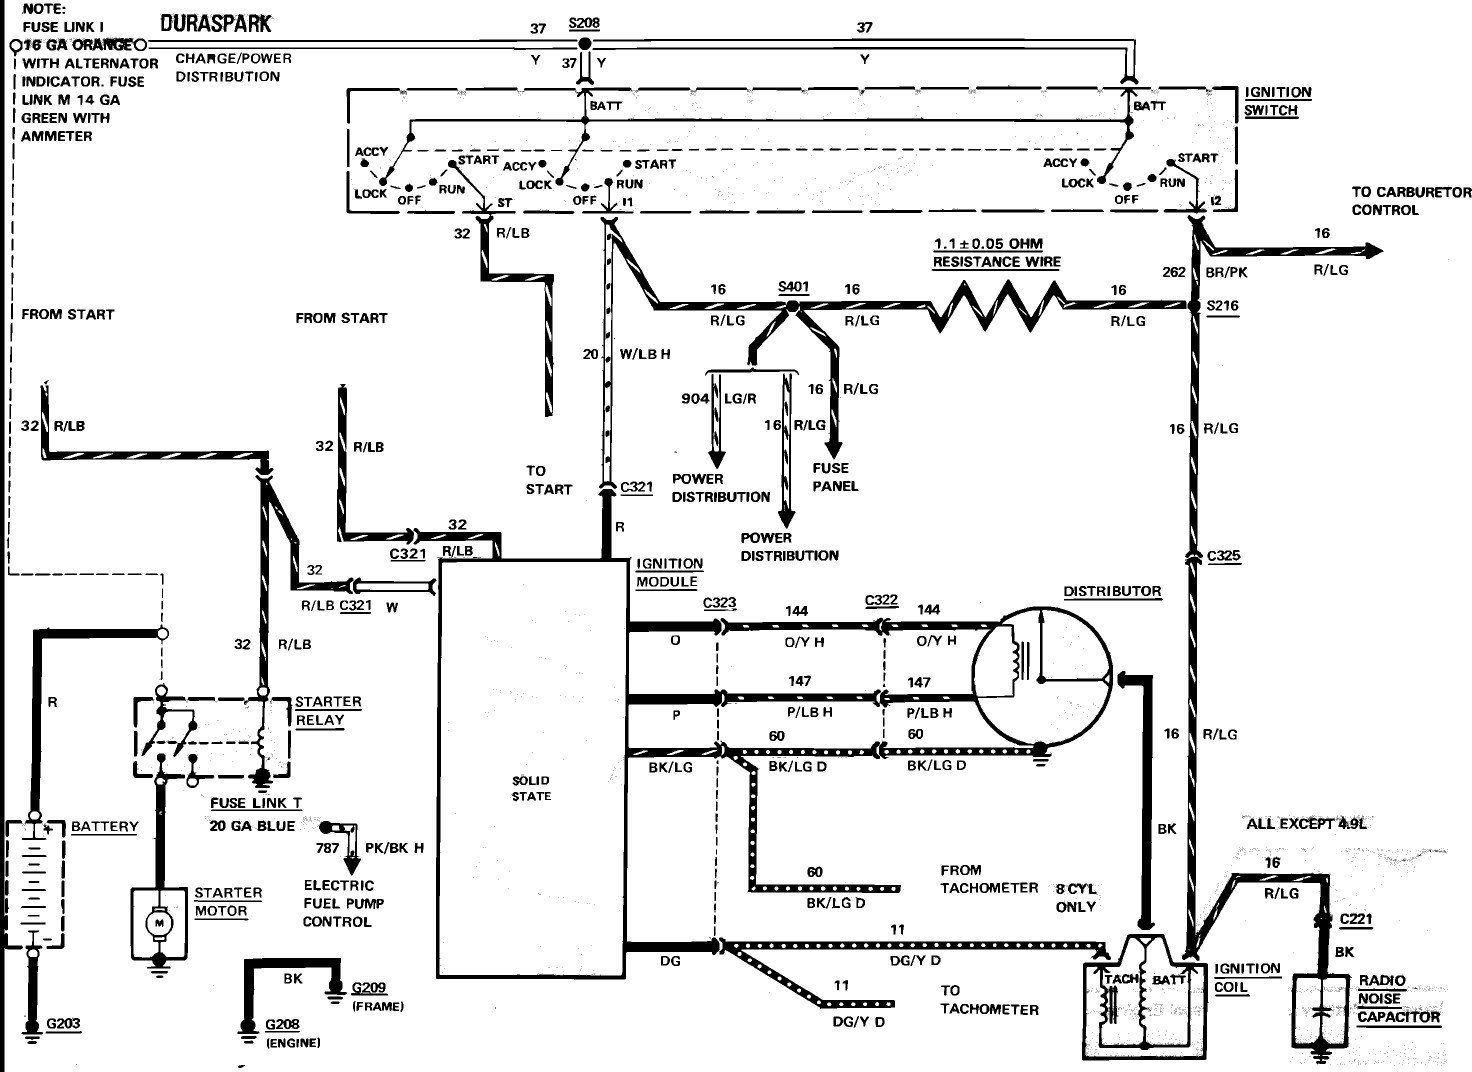 2004 ford excursion fuse diagram wiring diagram for 2004 ford f550 diesel e3 wiring diagram  wiring diagram for 2004 ford f550